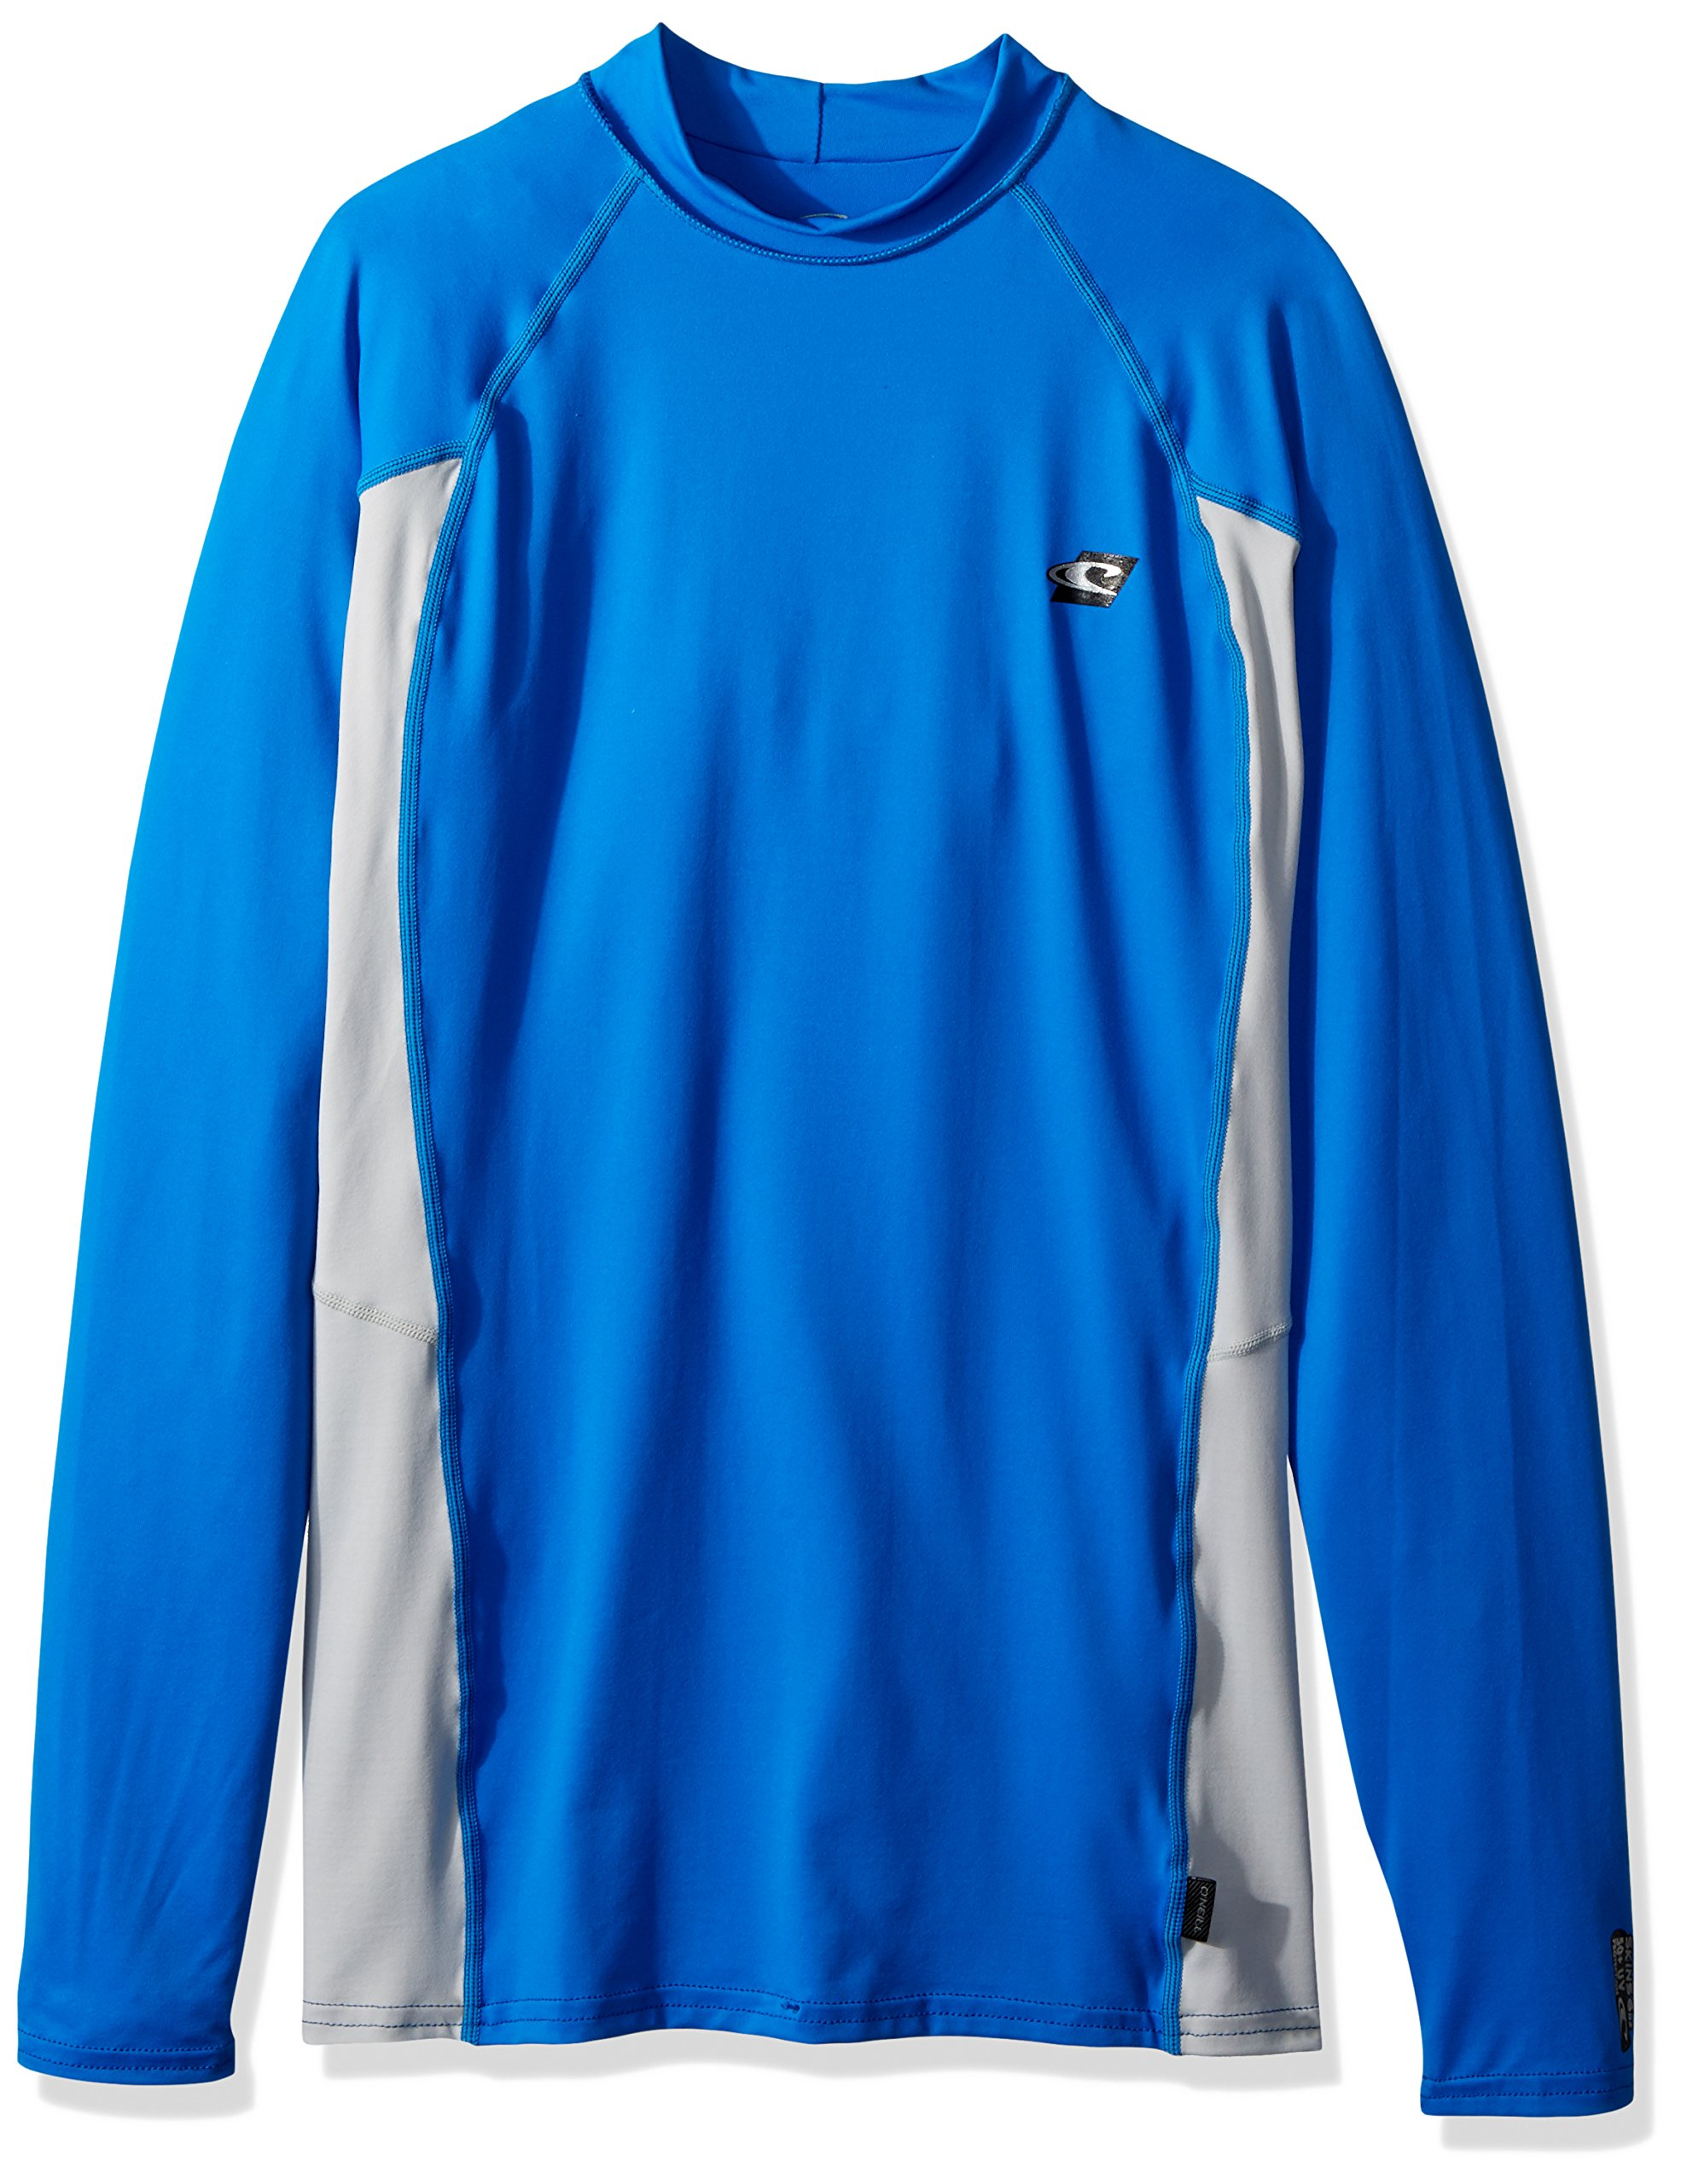 O'Neill Men's Premium Skins Upf 50+ Long Sleeve Rash Guard, Ocean/CoolGrey, 3X-Large